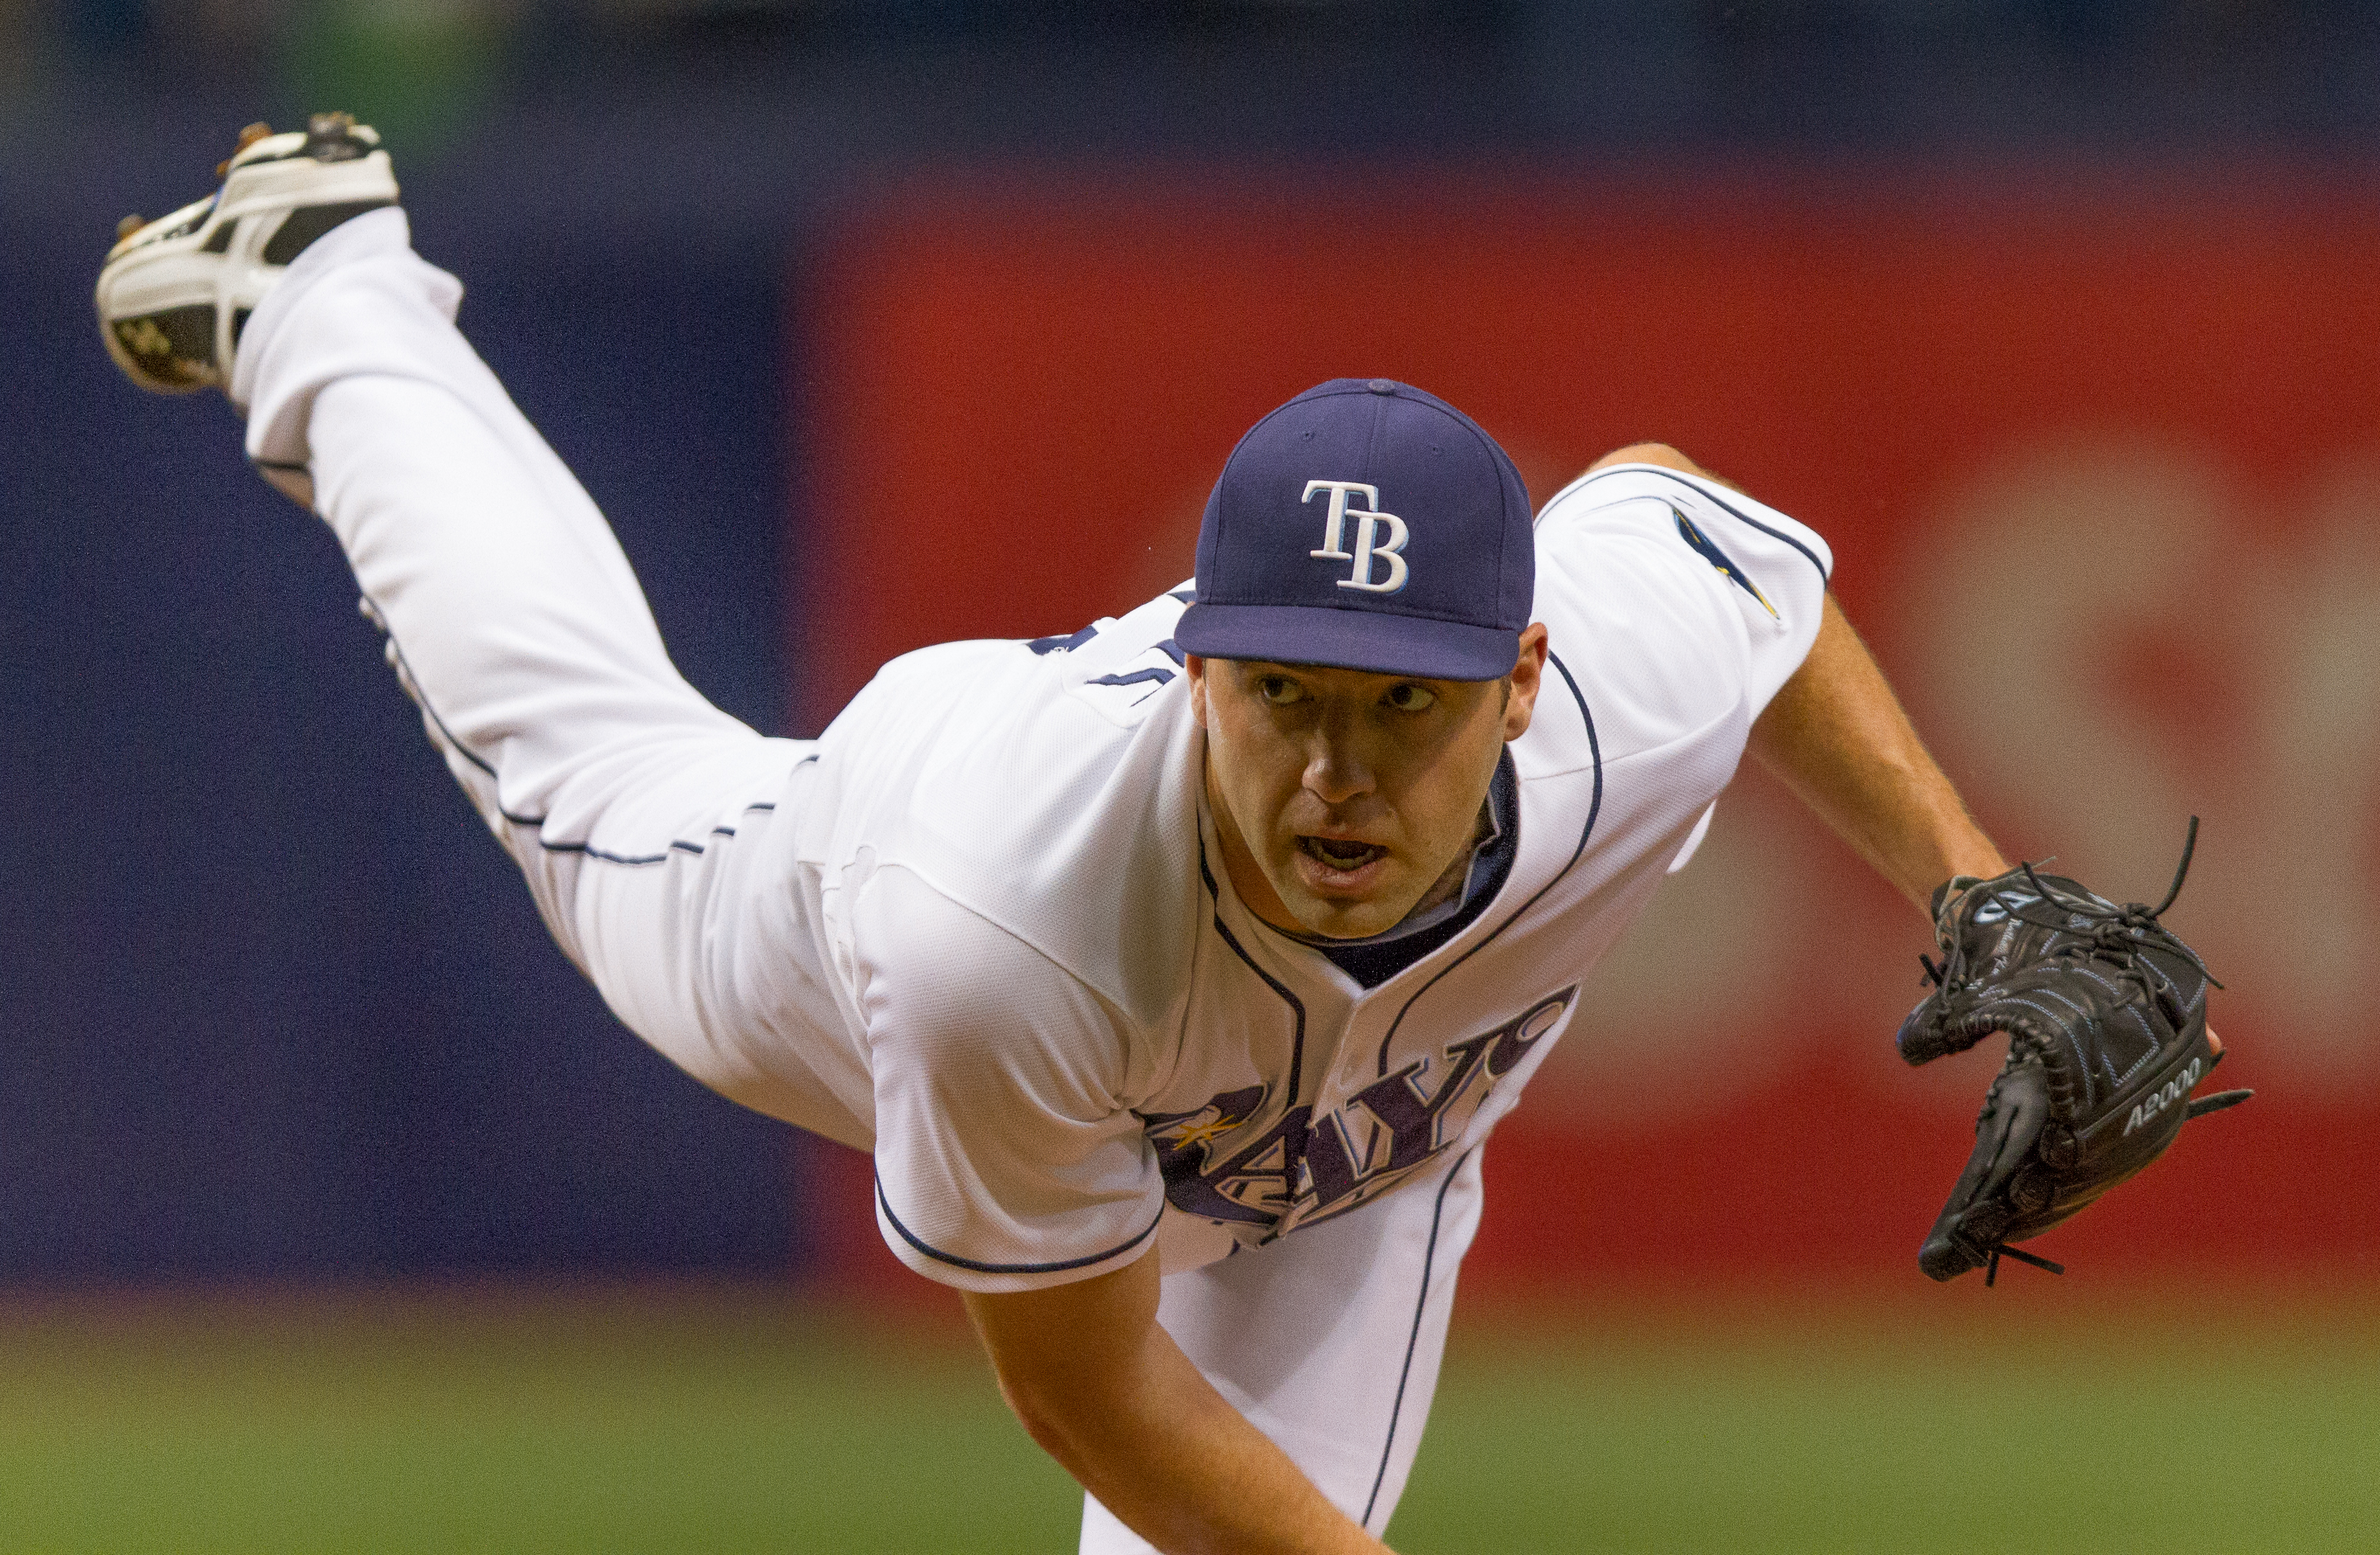 Nathan Karns was wild and ineffective vs. Twins./JEFFREY S. KING